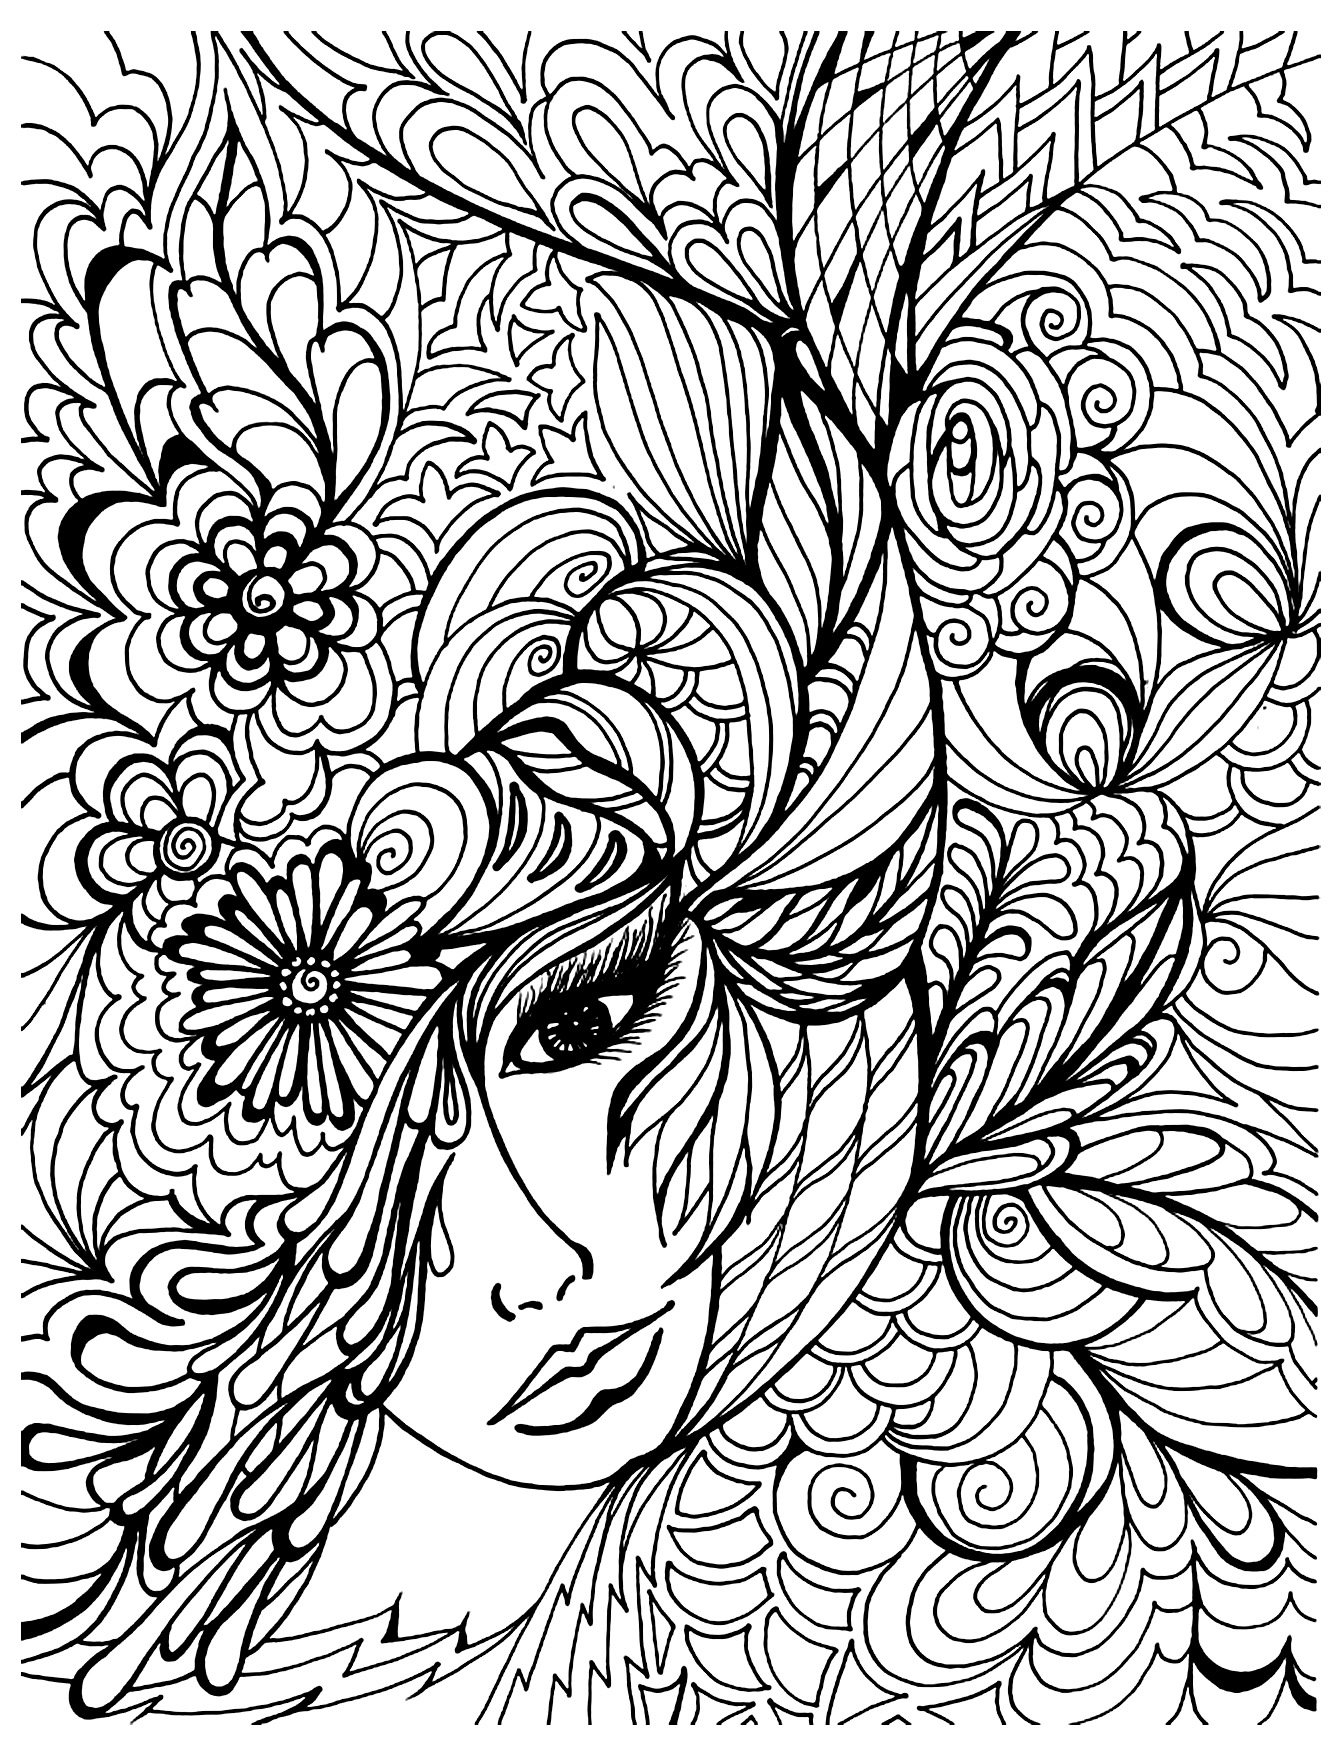 face vegetation zen and anti stress coloring pages for adults justcolor